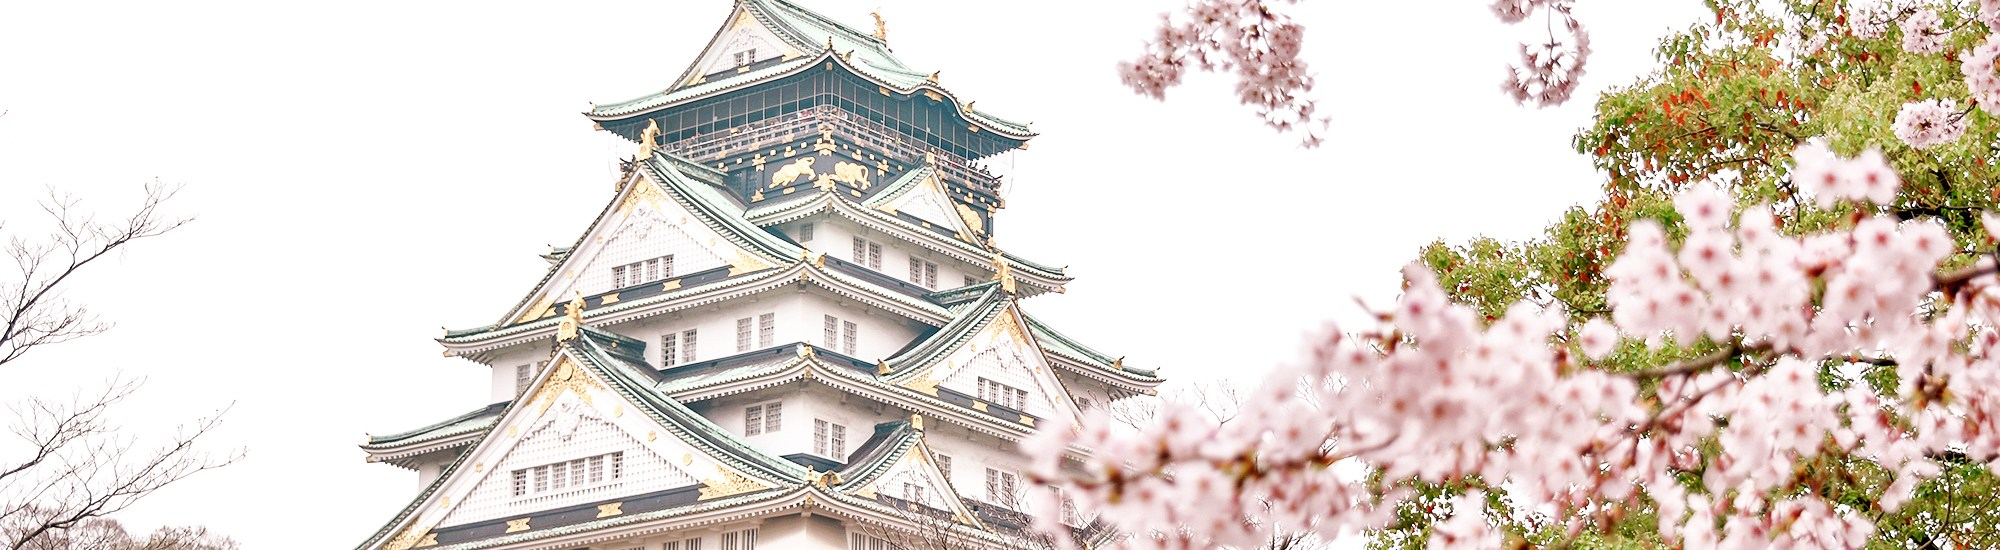 Spring in Osaka, Kyoto and Nara (Part 2 of Japan Trip)